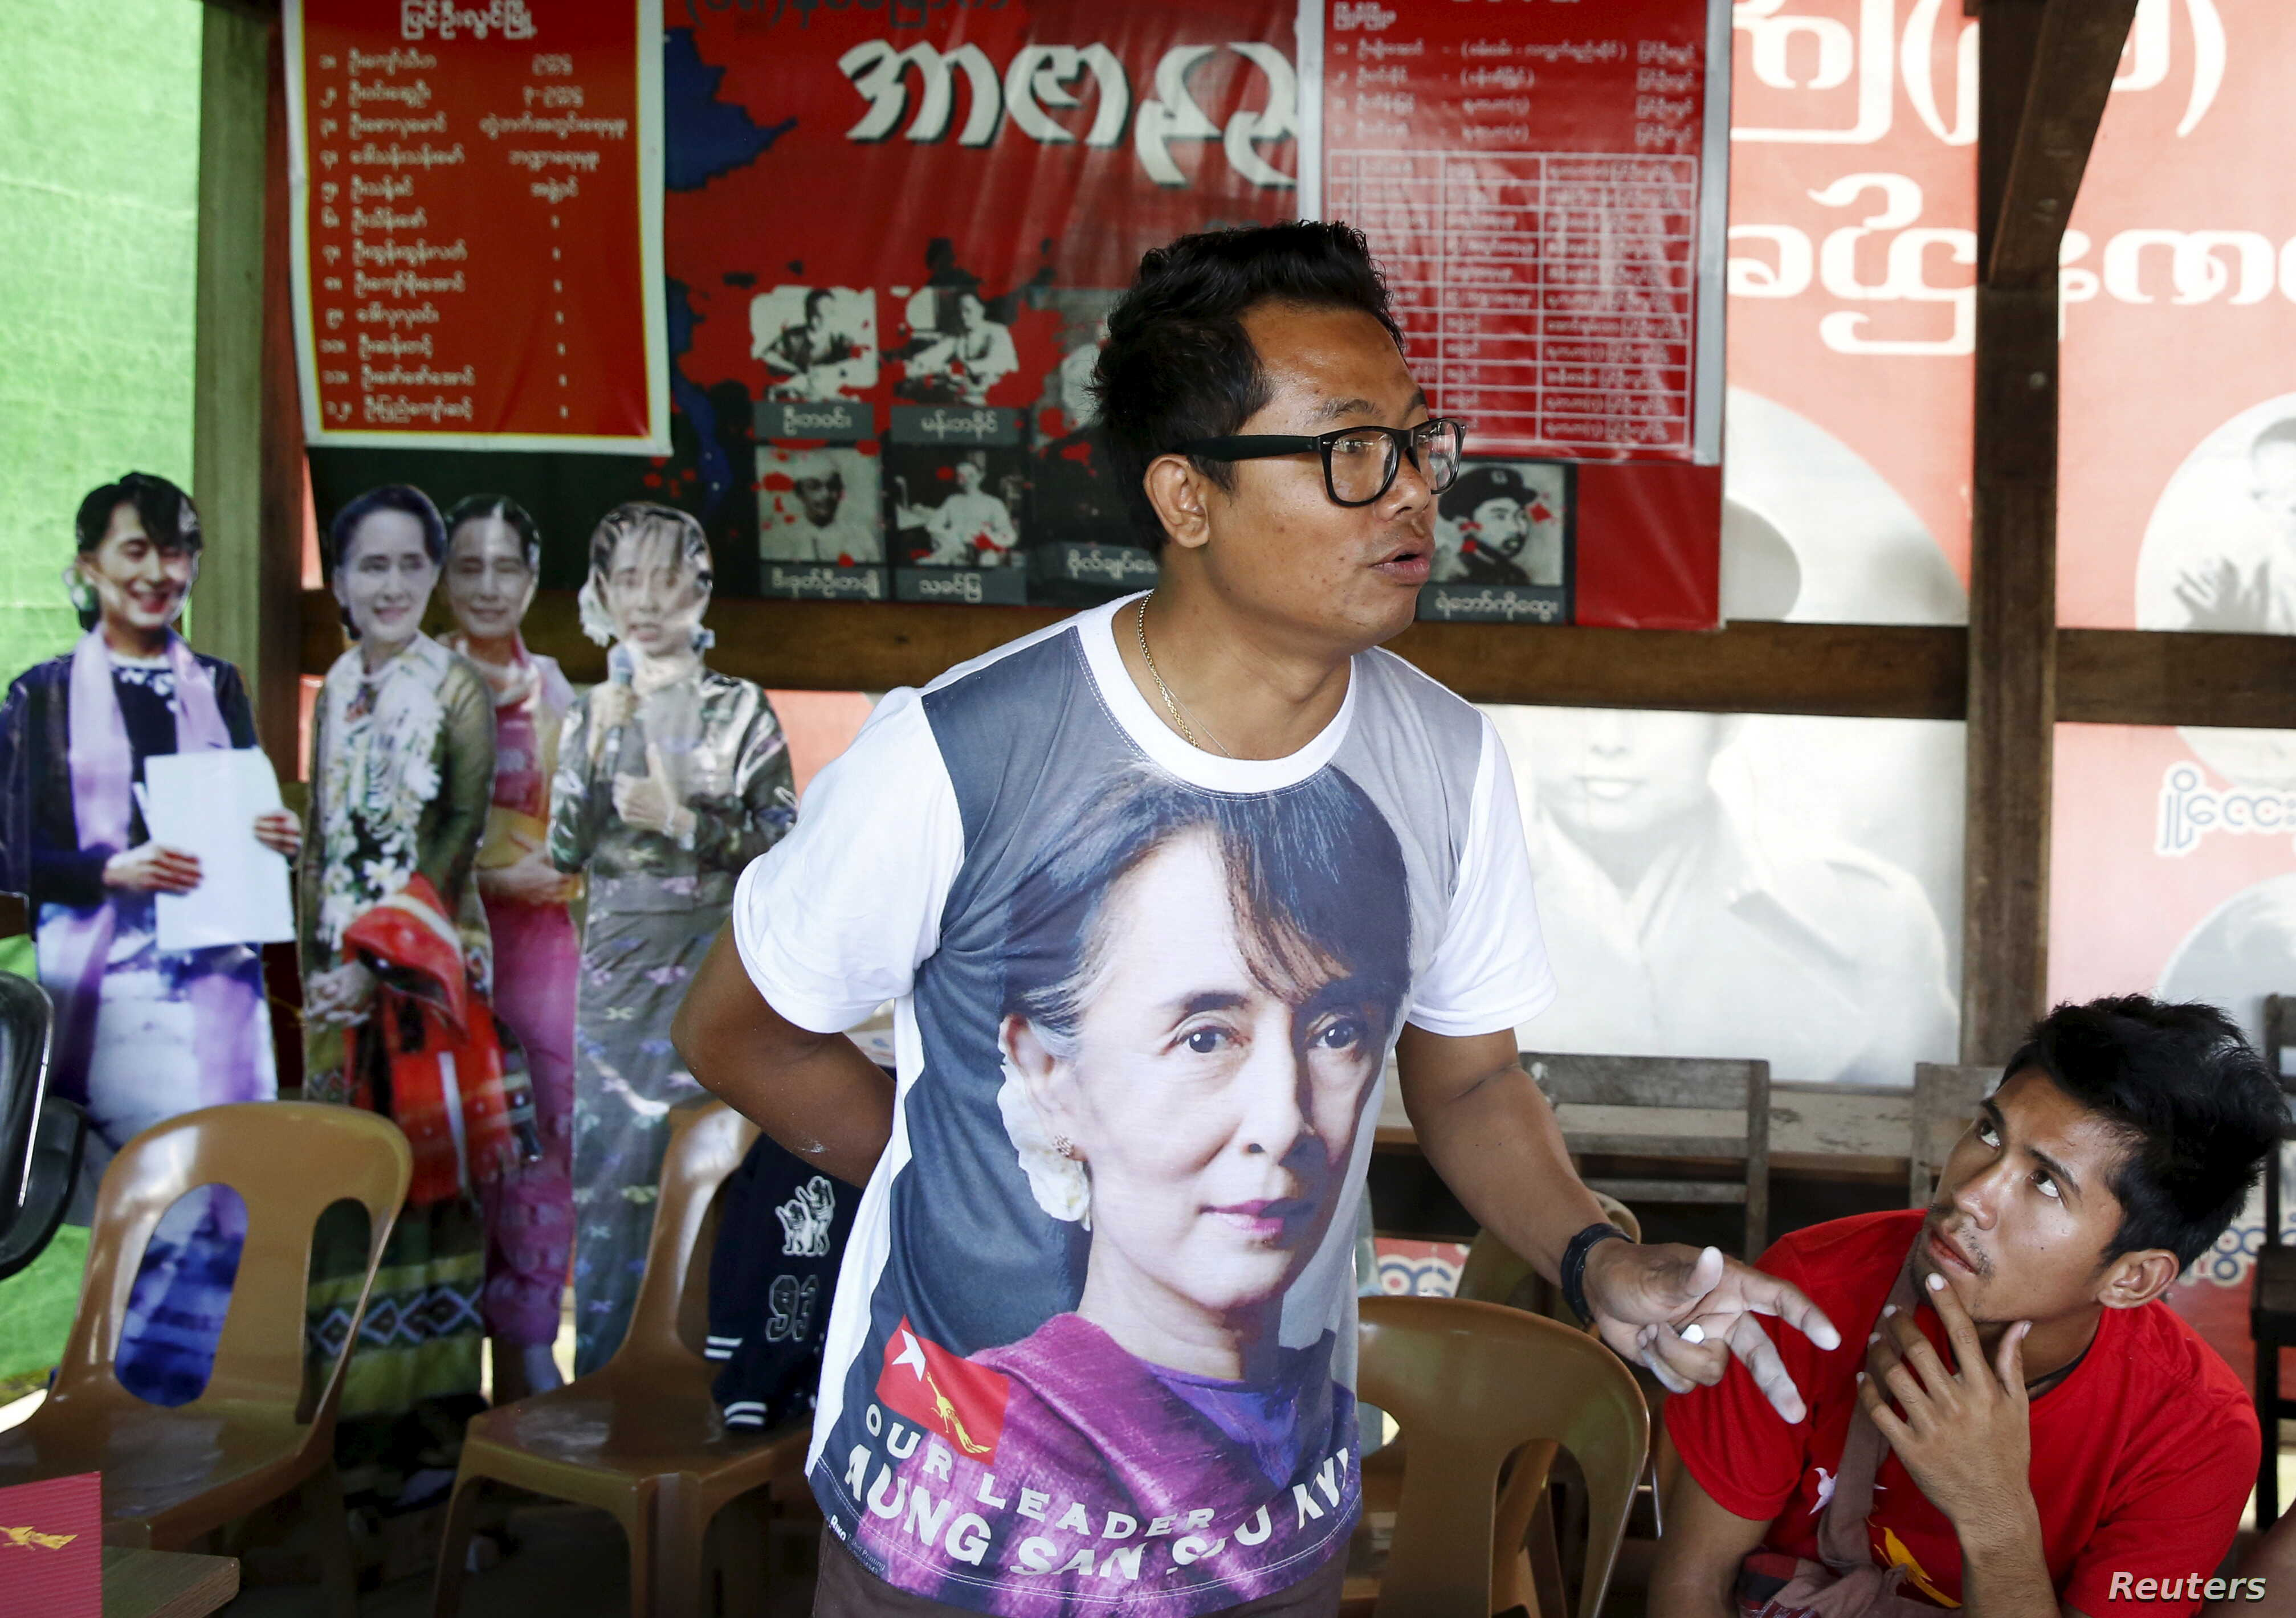 A National League for Democracy (NLD) supporter trains election scrutineers ahead of Sunday's general election in Pyin Oo Lwin, Myanmar, Nov. 6, 2015.